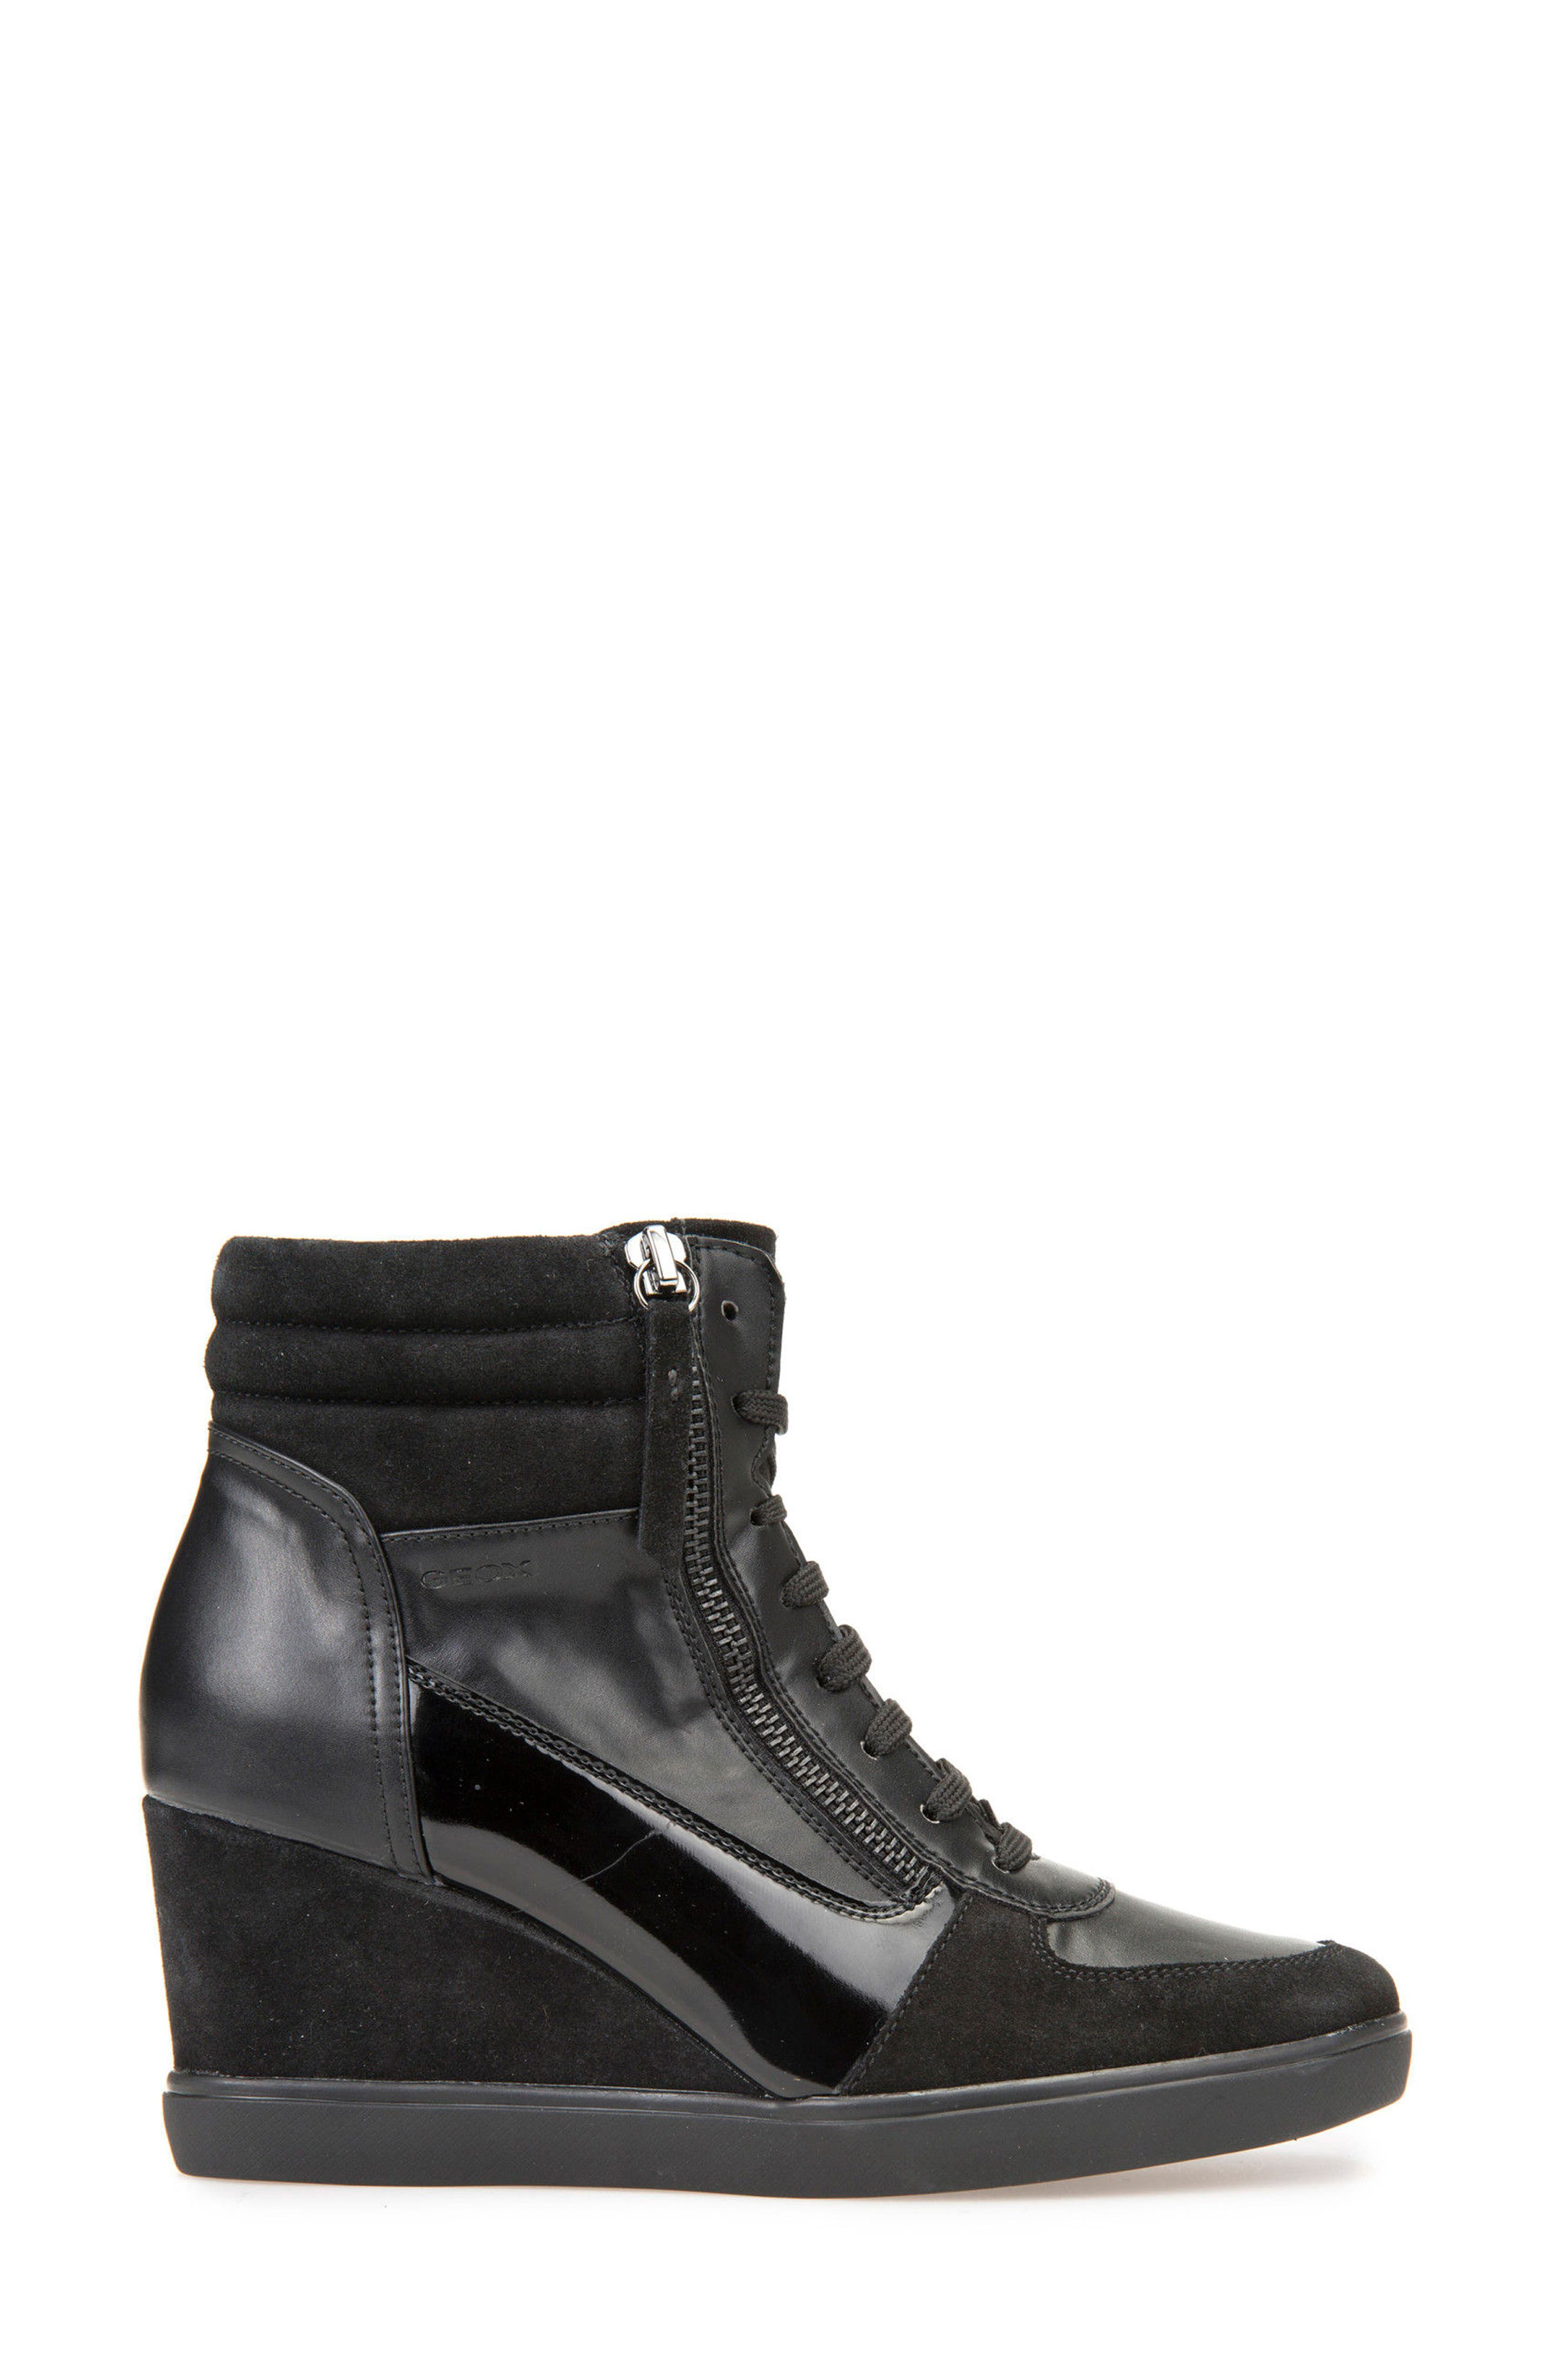 Alternate Image 3  - Geox Eleni Lace-Up Wedge Bootie (Women)